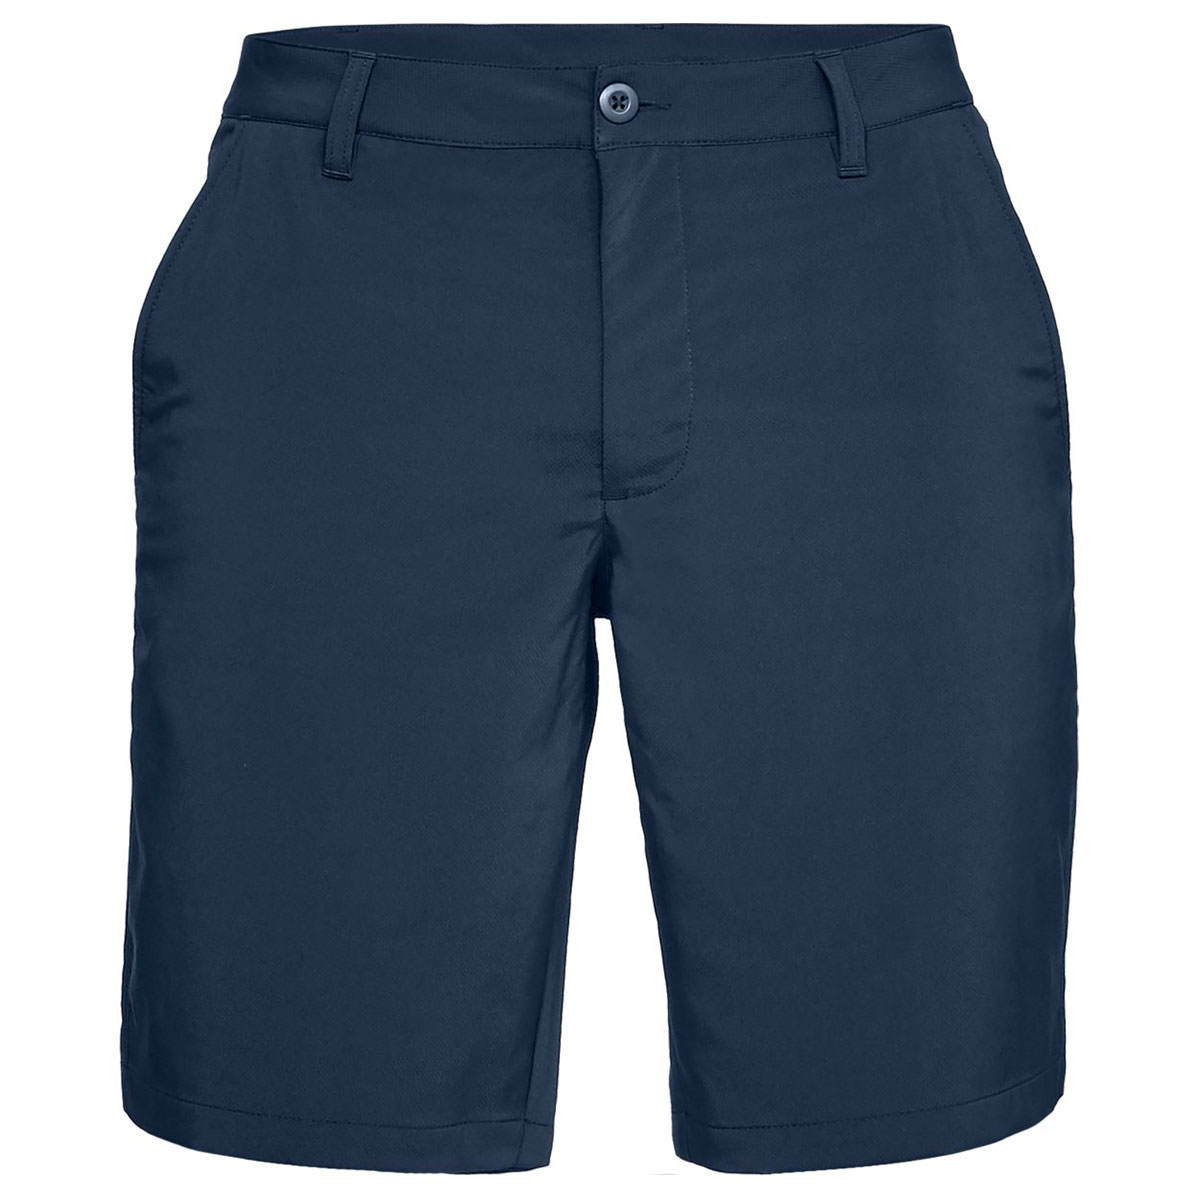 Under-Armour-Mens-EU-Tech-Stretch-Soft-Fitted-Golf-Shorts Indexbild 12